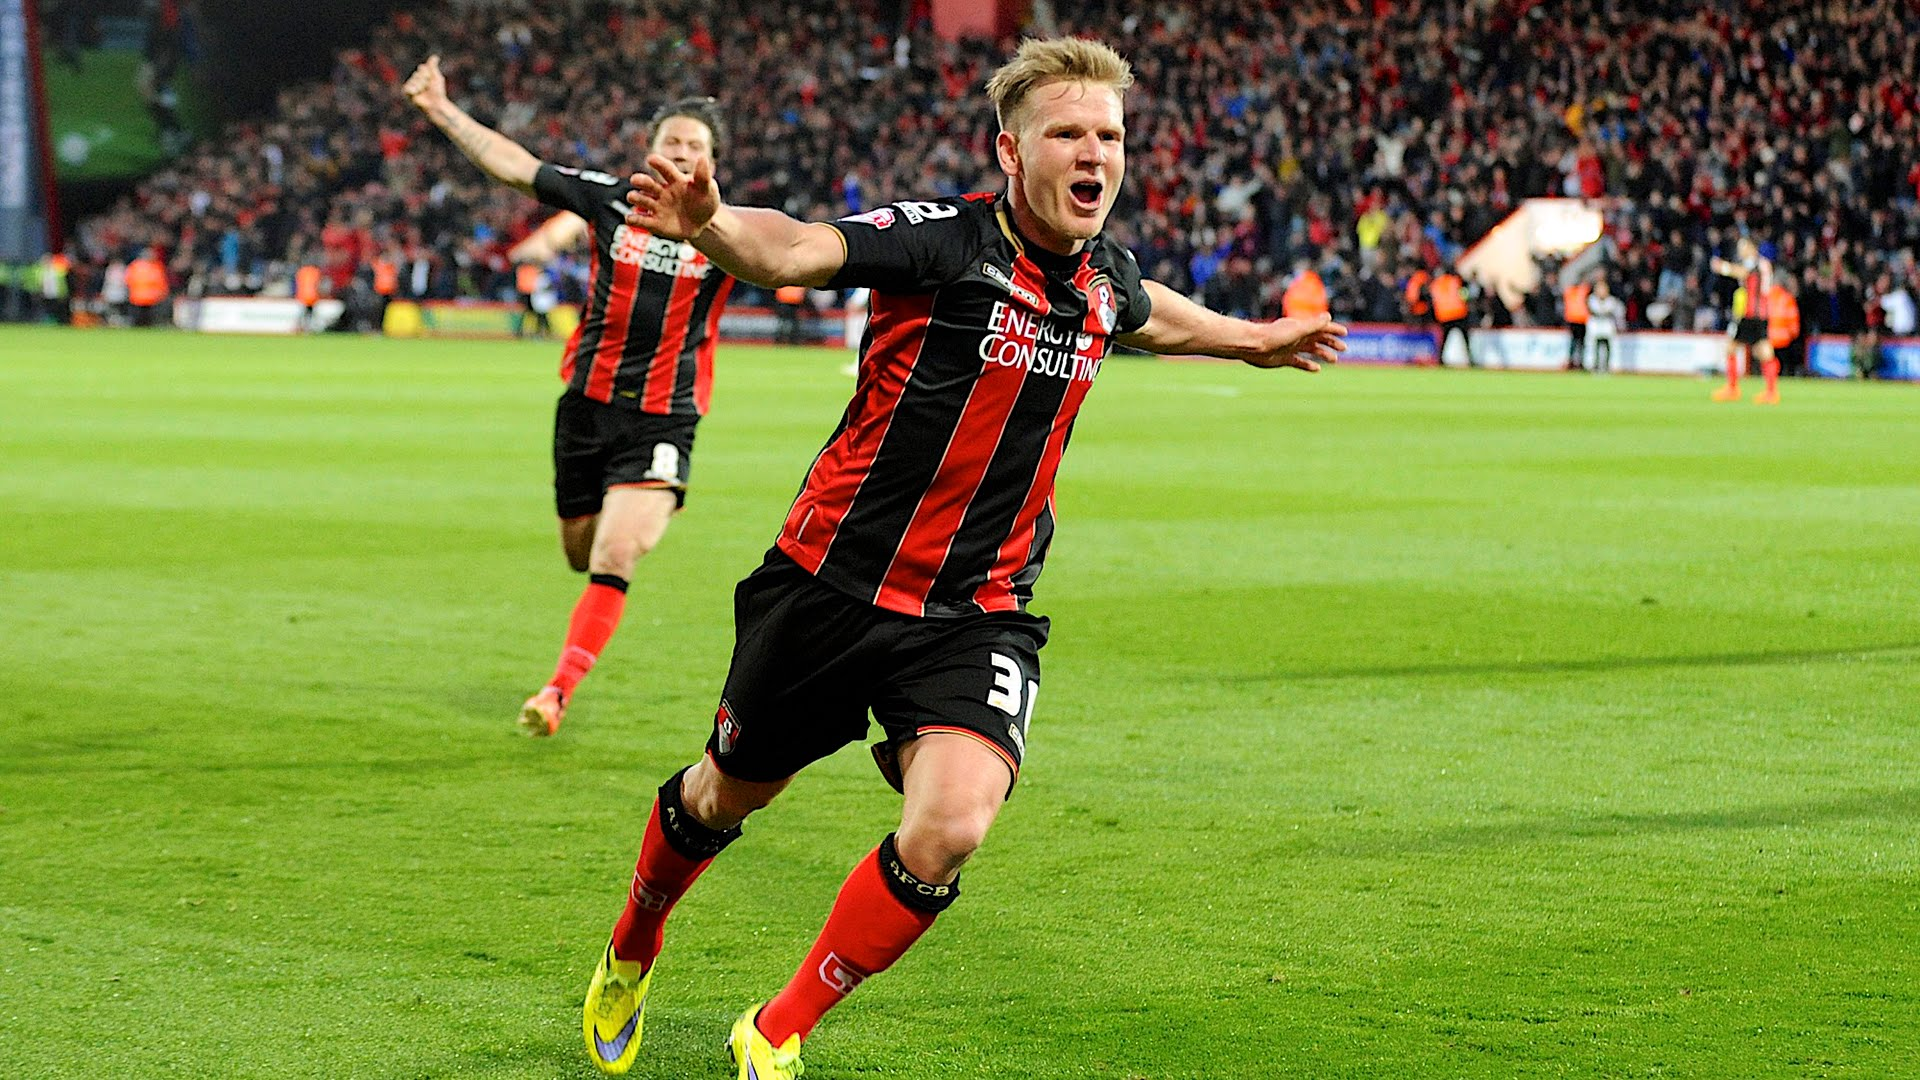 AFC Bournemouth reported a loss of more than 38 million